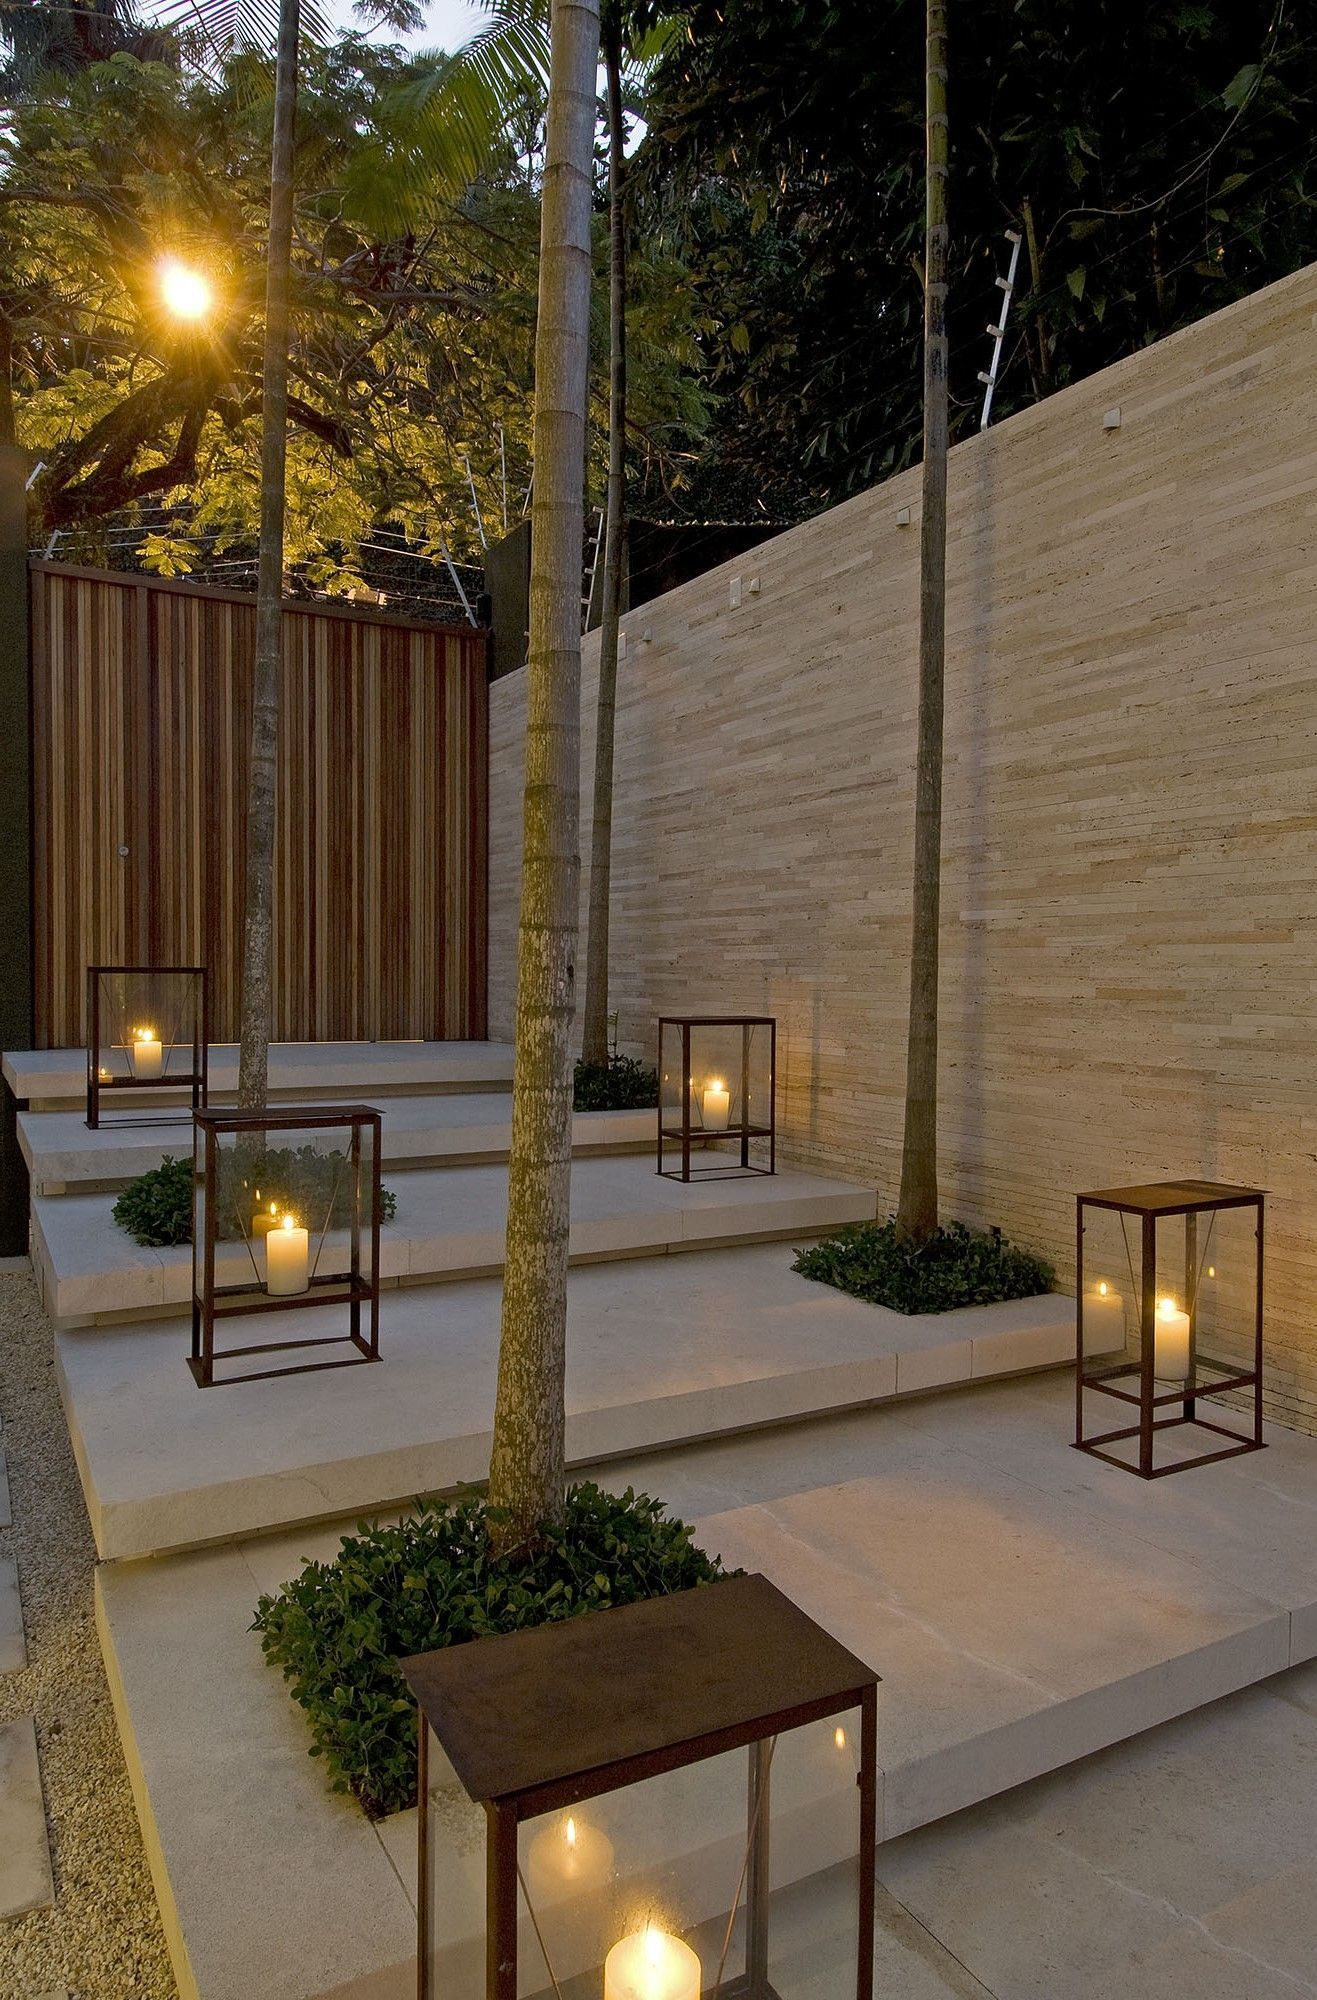 5 Garden Decor Ideas That Will Change Your Whole Outdoor